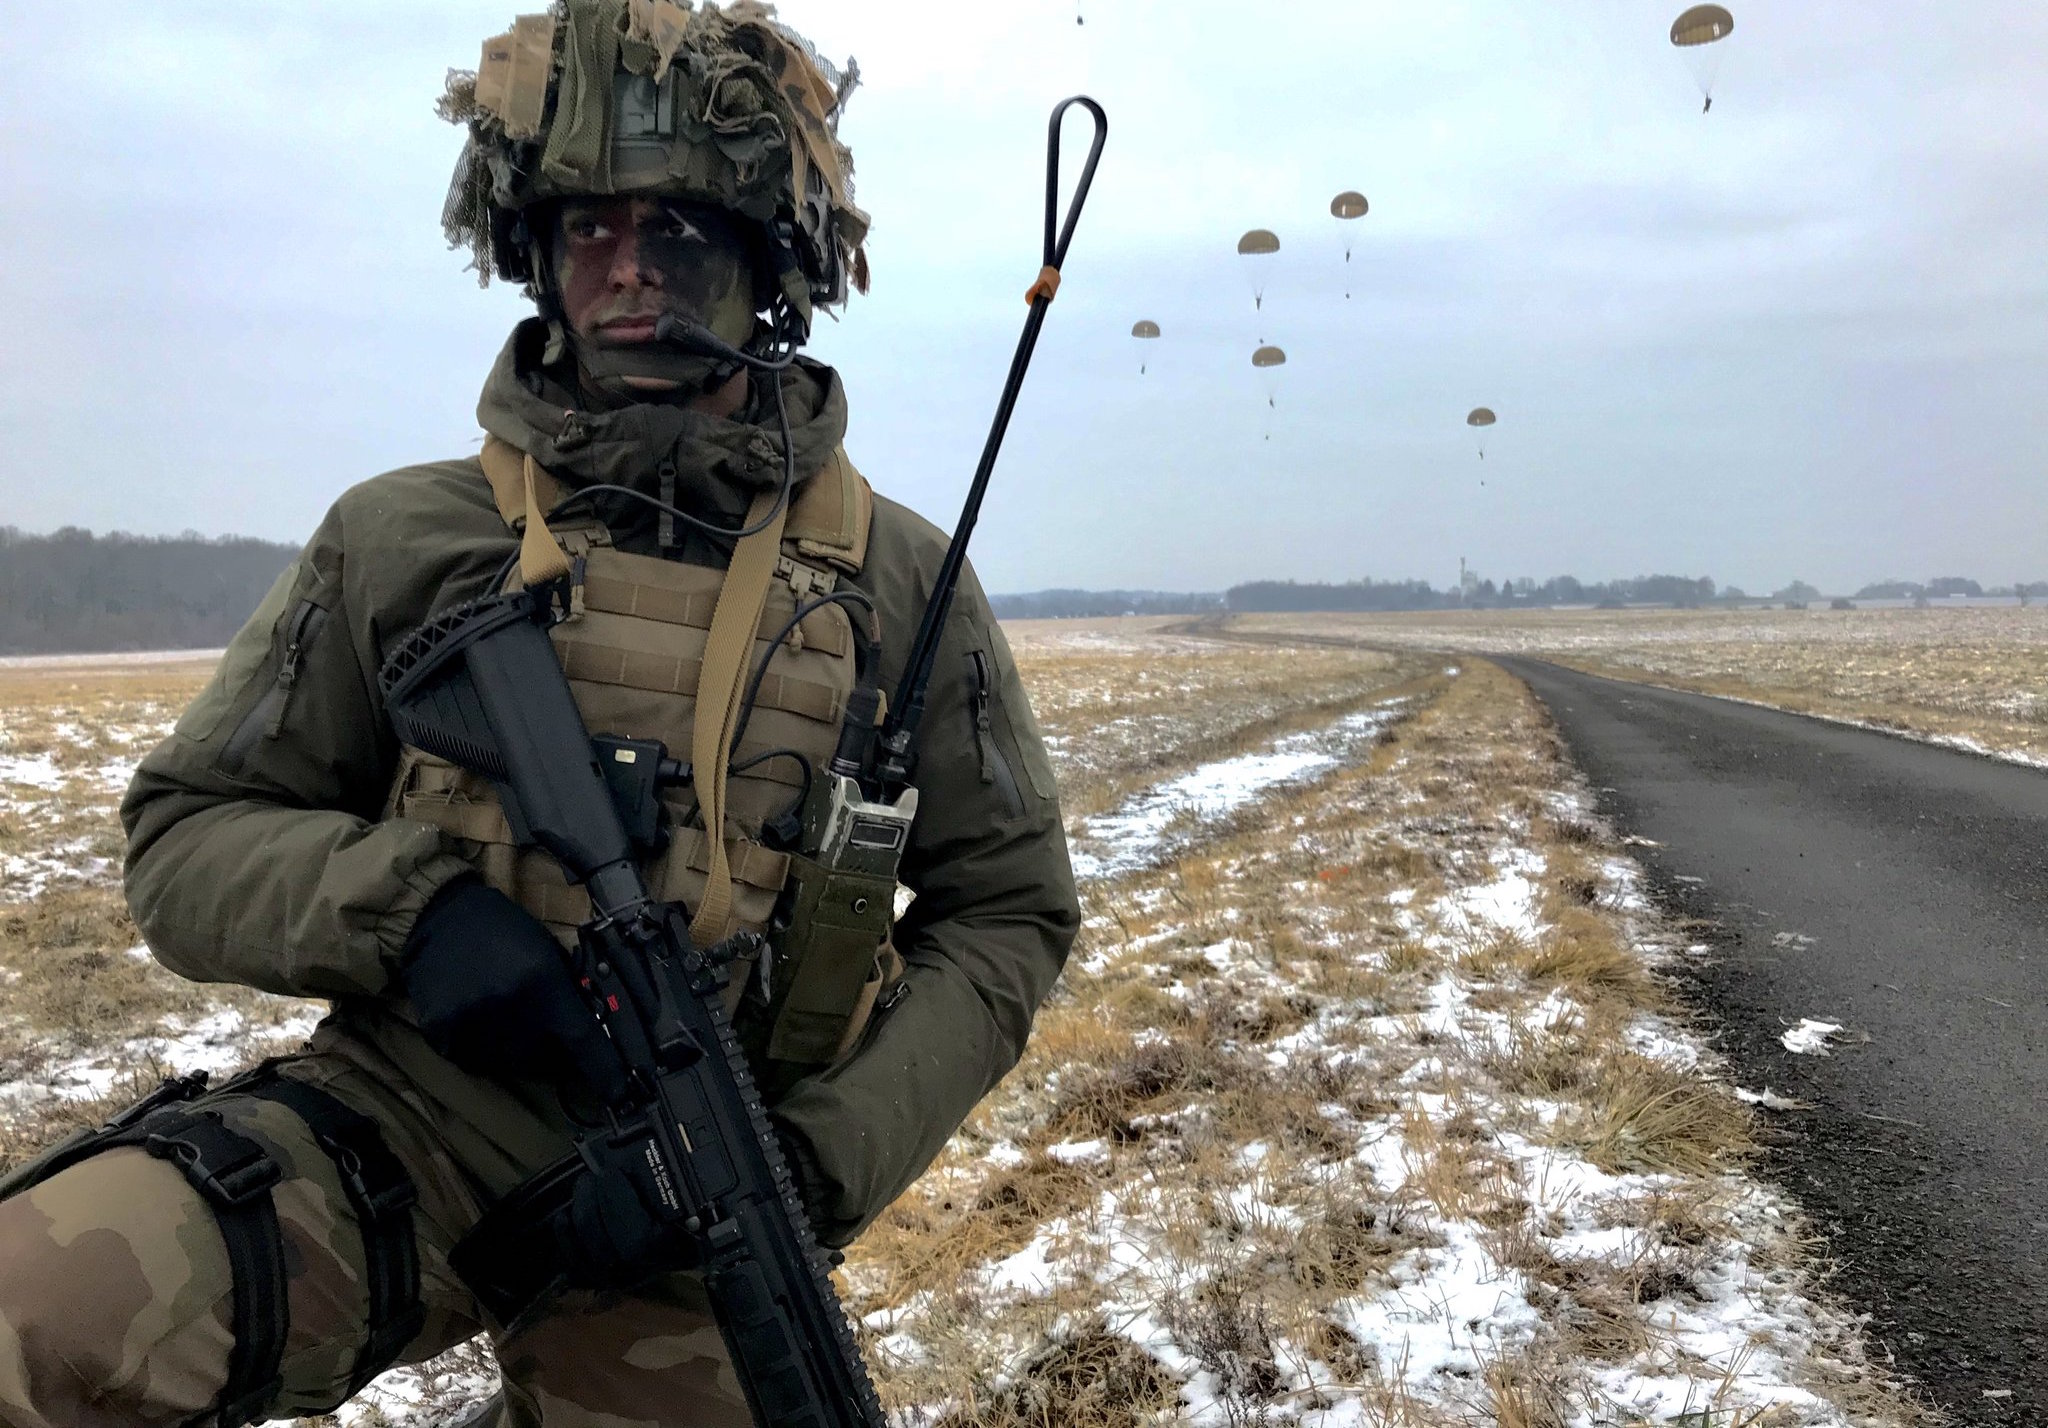 French paratroopers in training in February (Photo: Armee de Terre/Twitter)